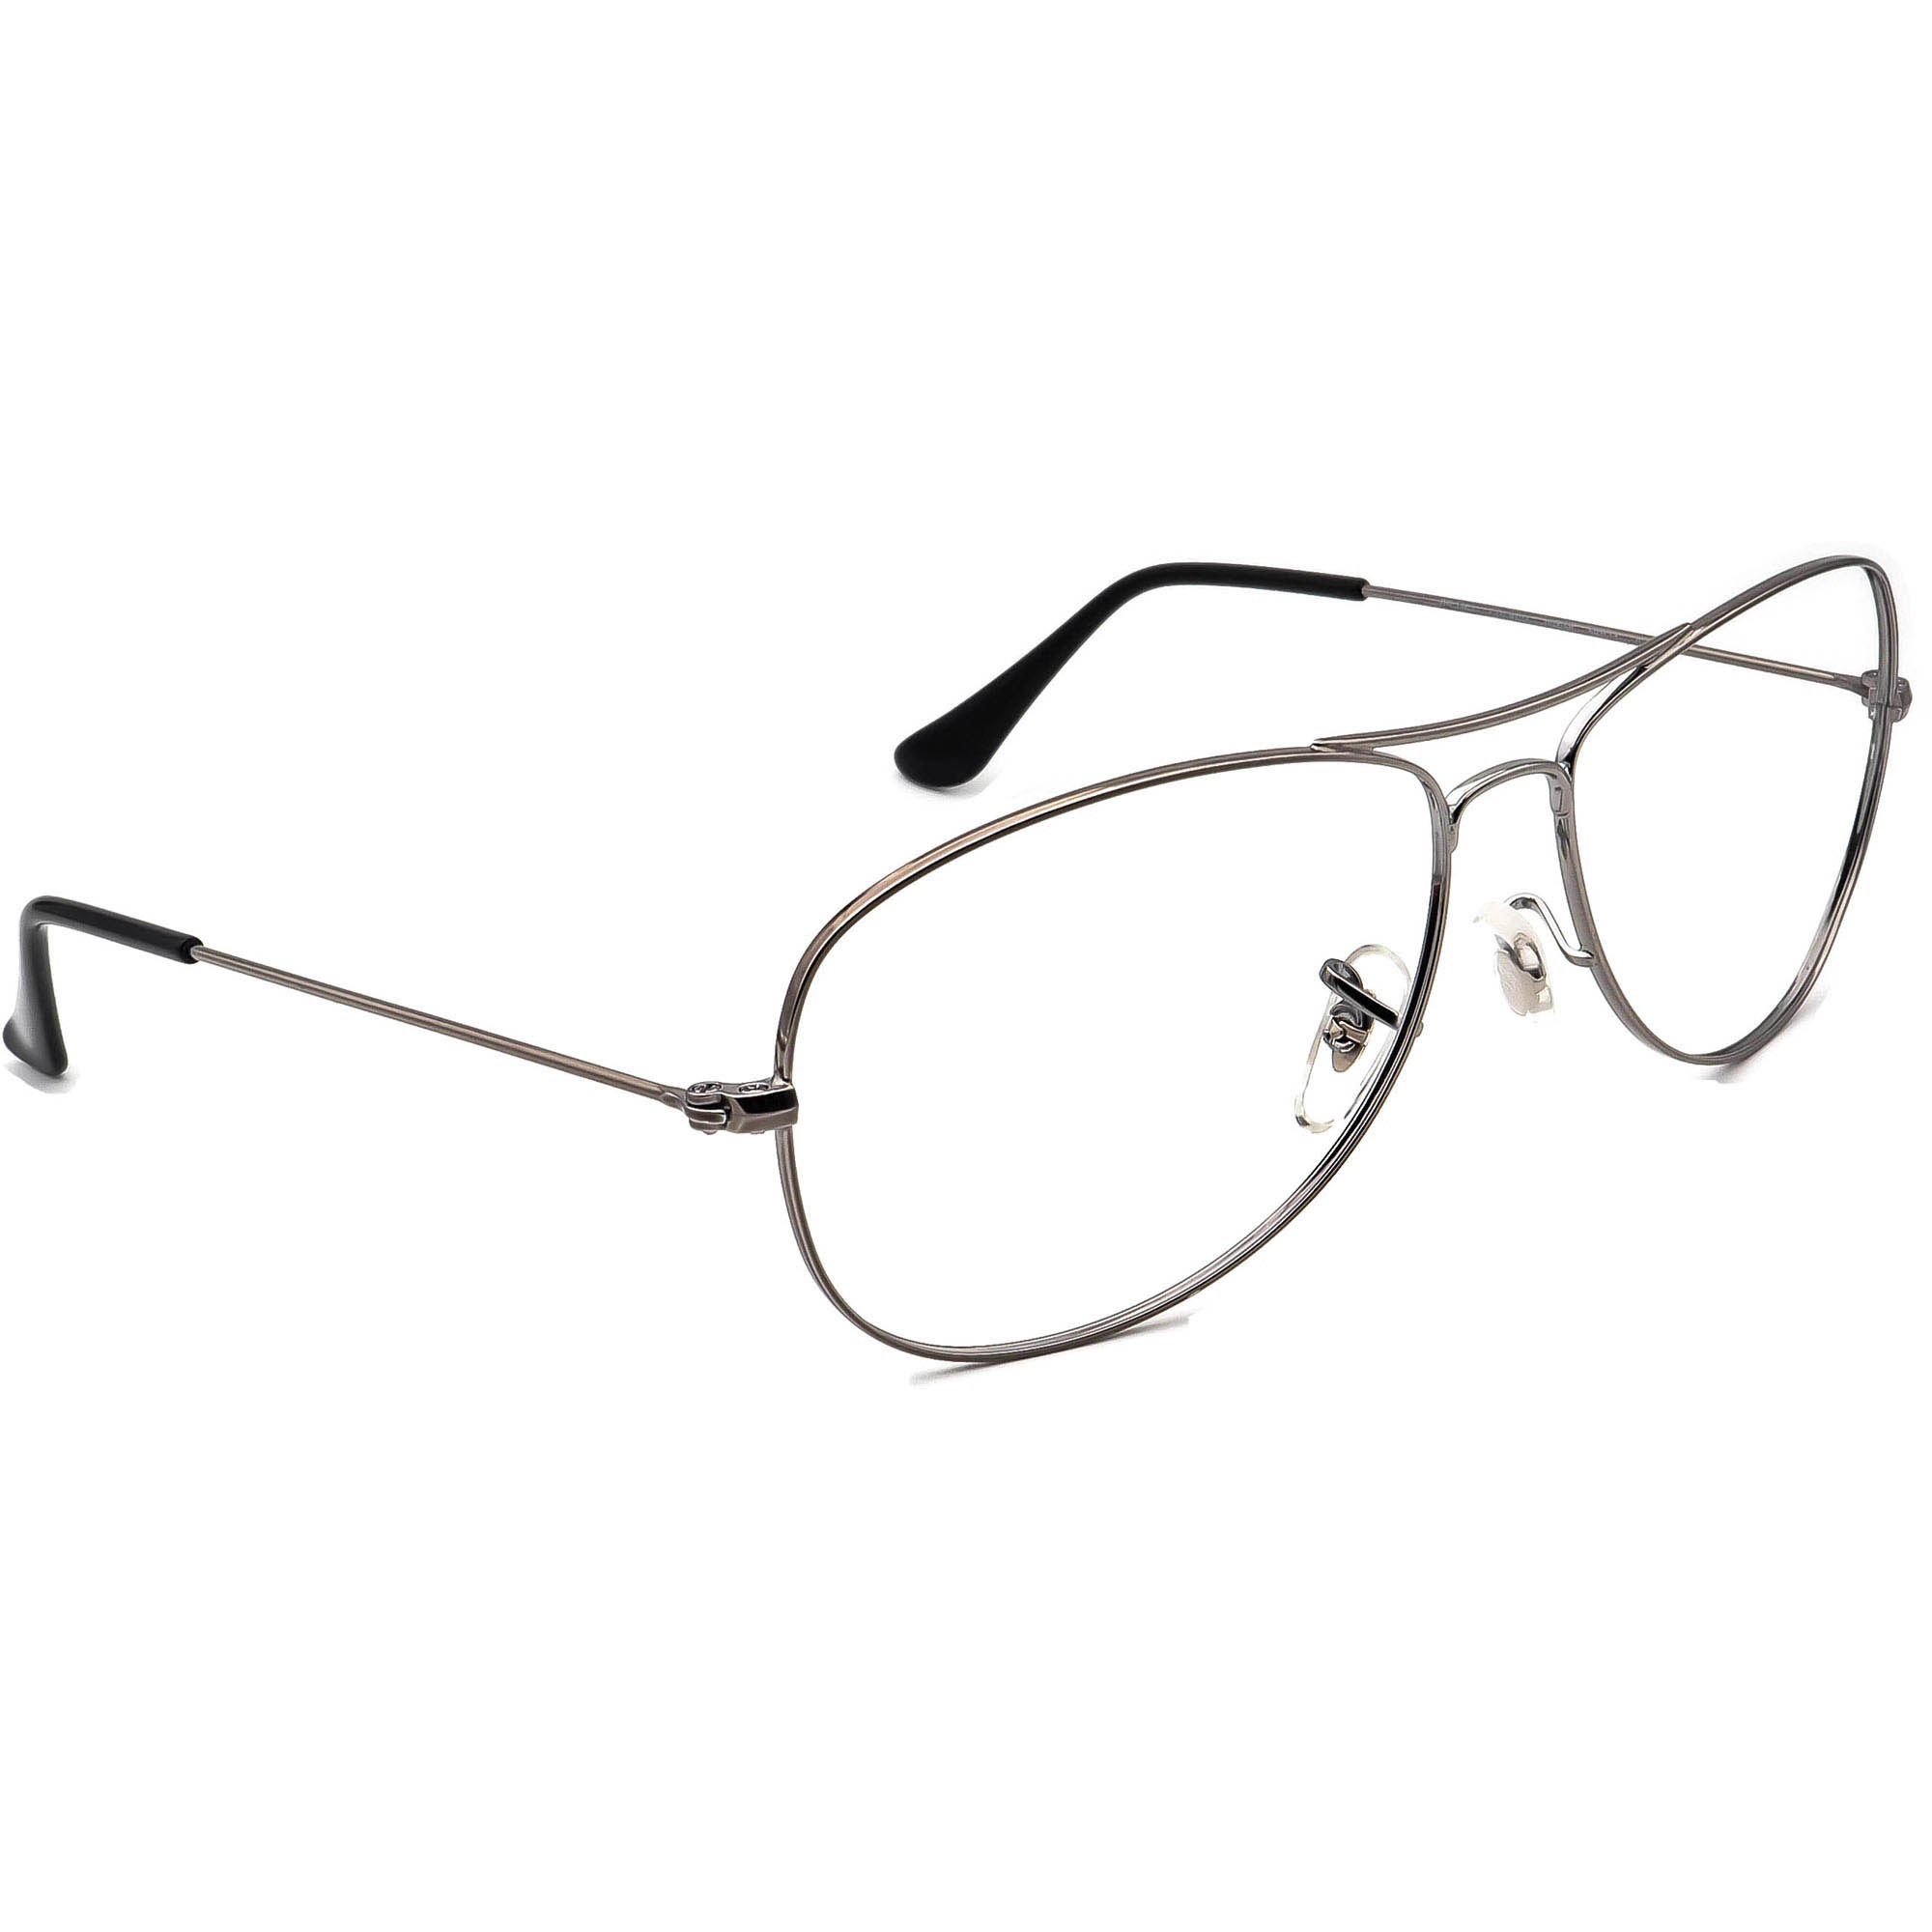 Ray-Ban RB 3362 Cockpit 004/58 Sunglasses Frame Only